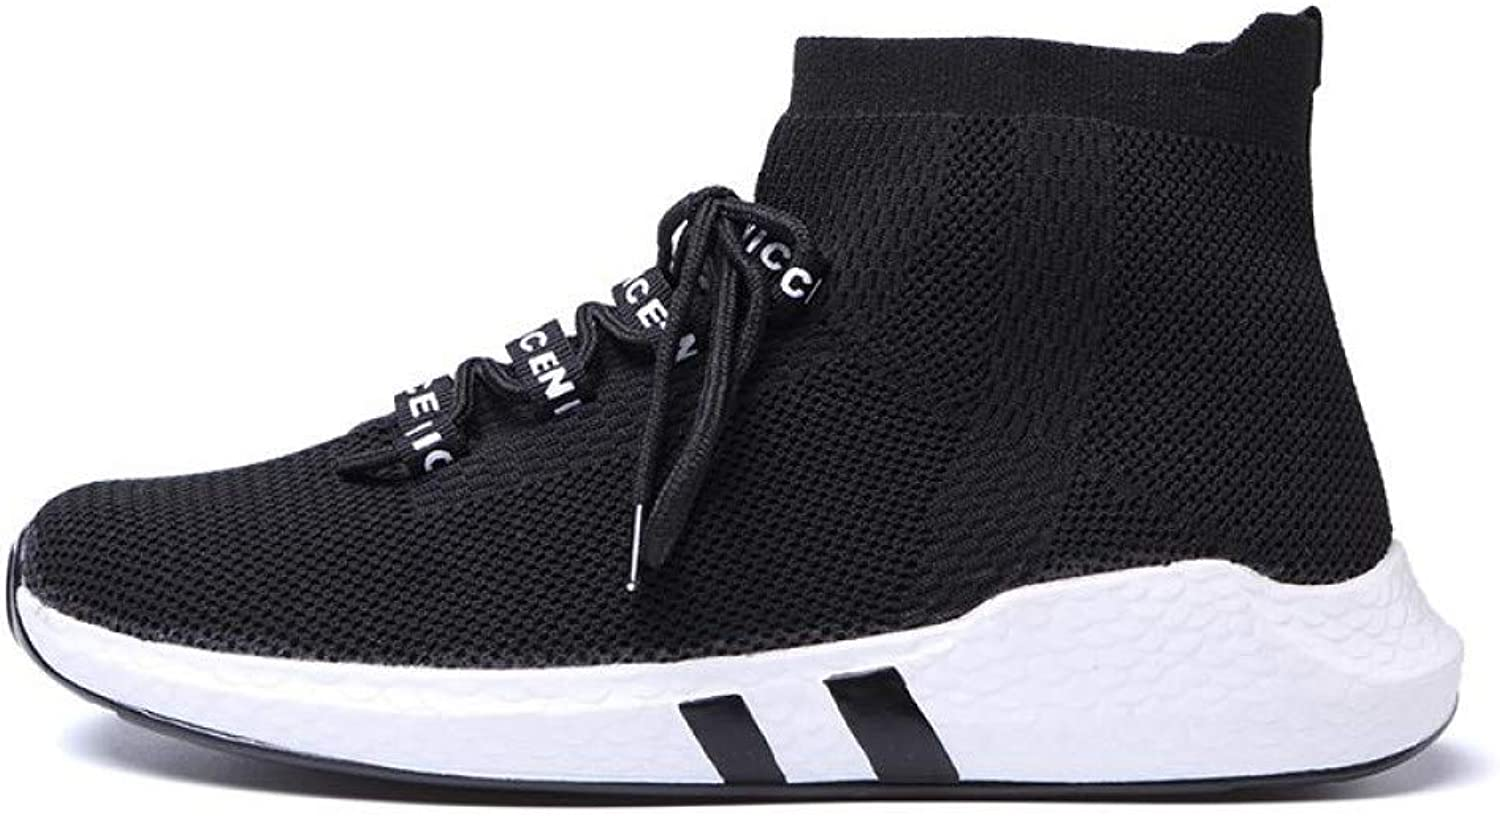 WDDGPZYDX Sports shoes Autumn Men Casual shoes High Top Men Fashion Sneakers Lace Up Sock shoes Ankle Casual shoes Male Outdoor Flats